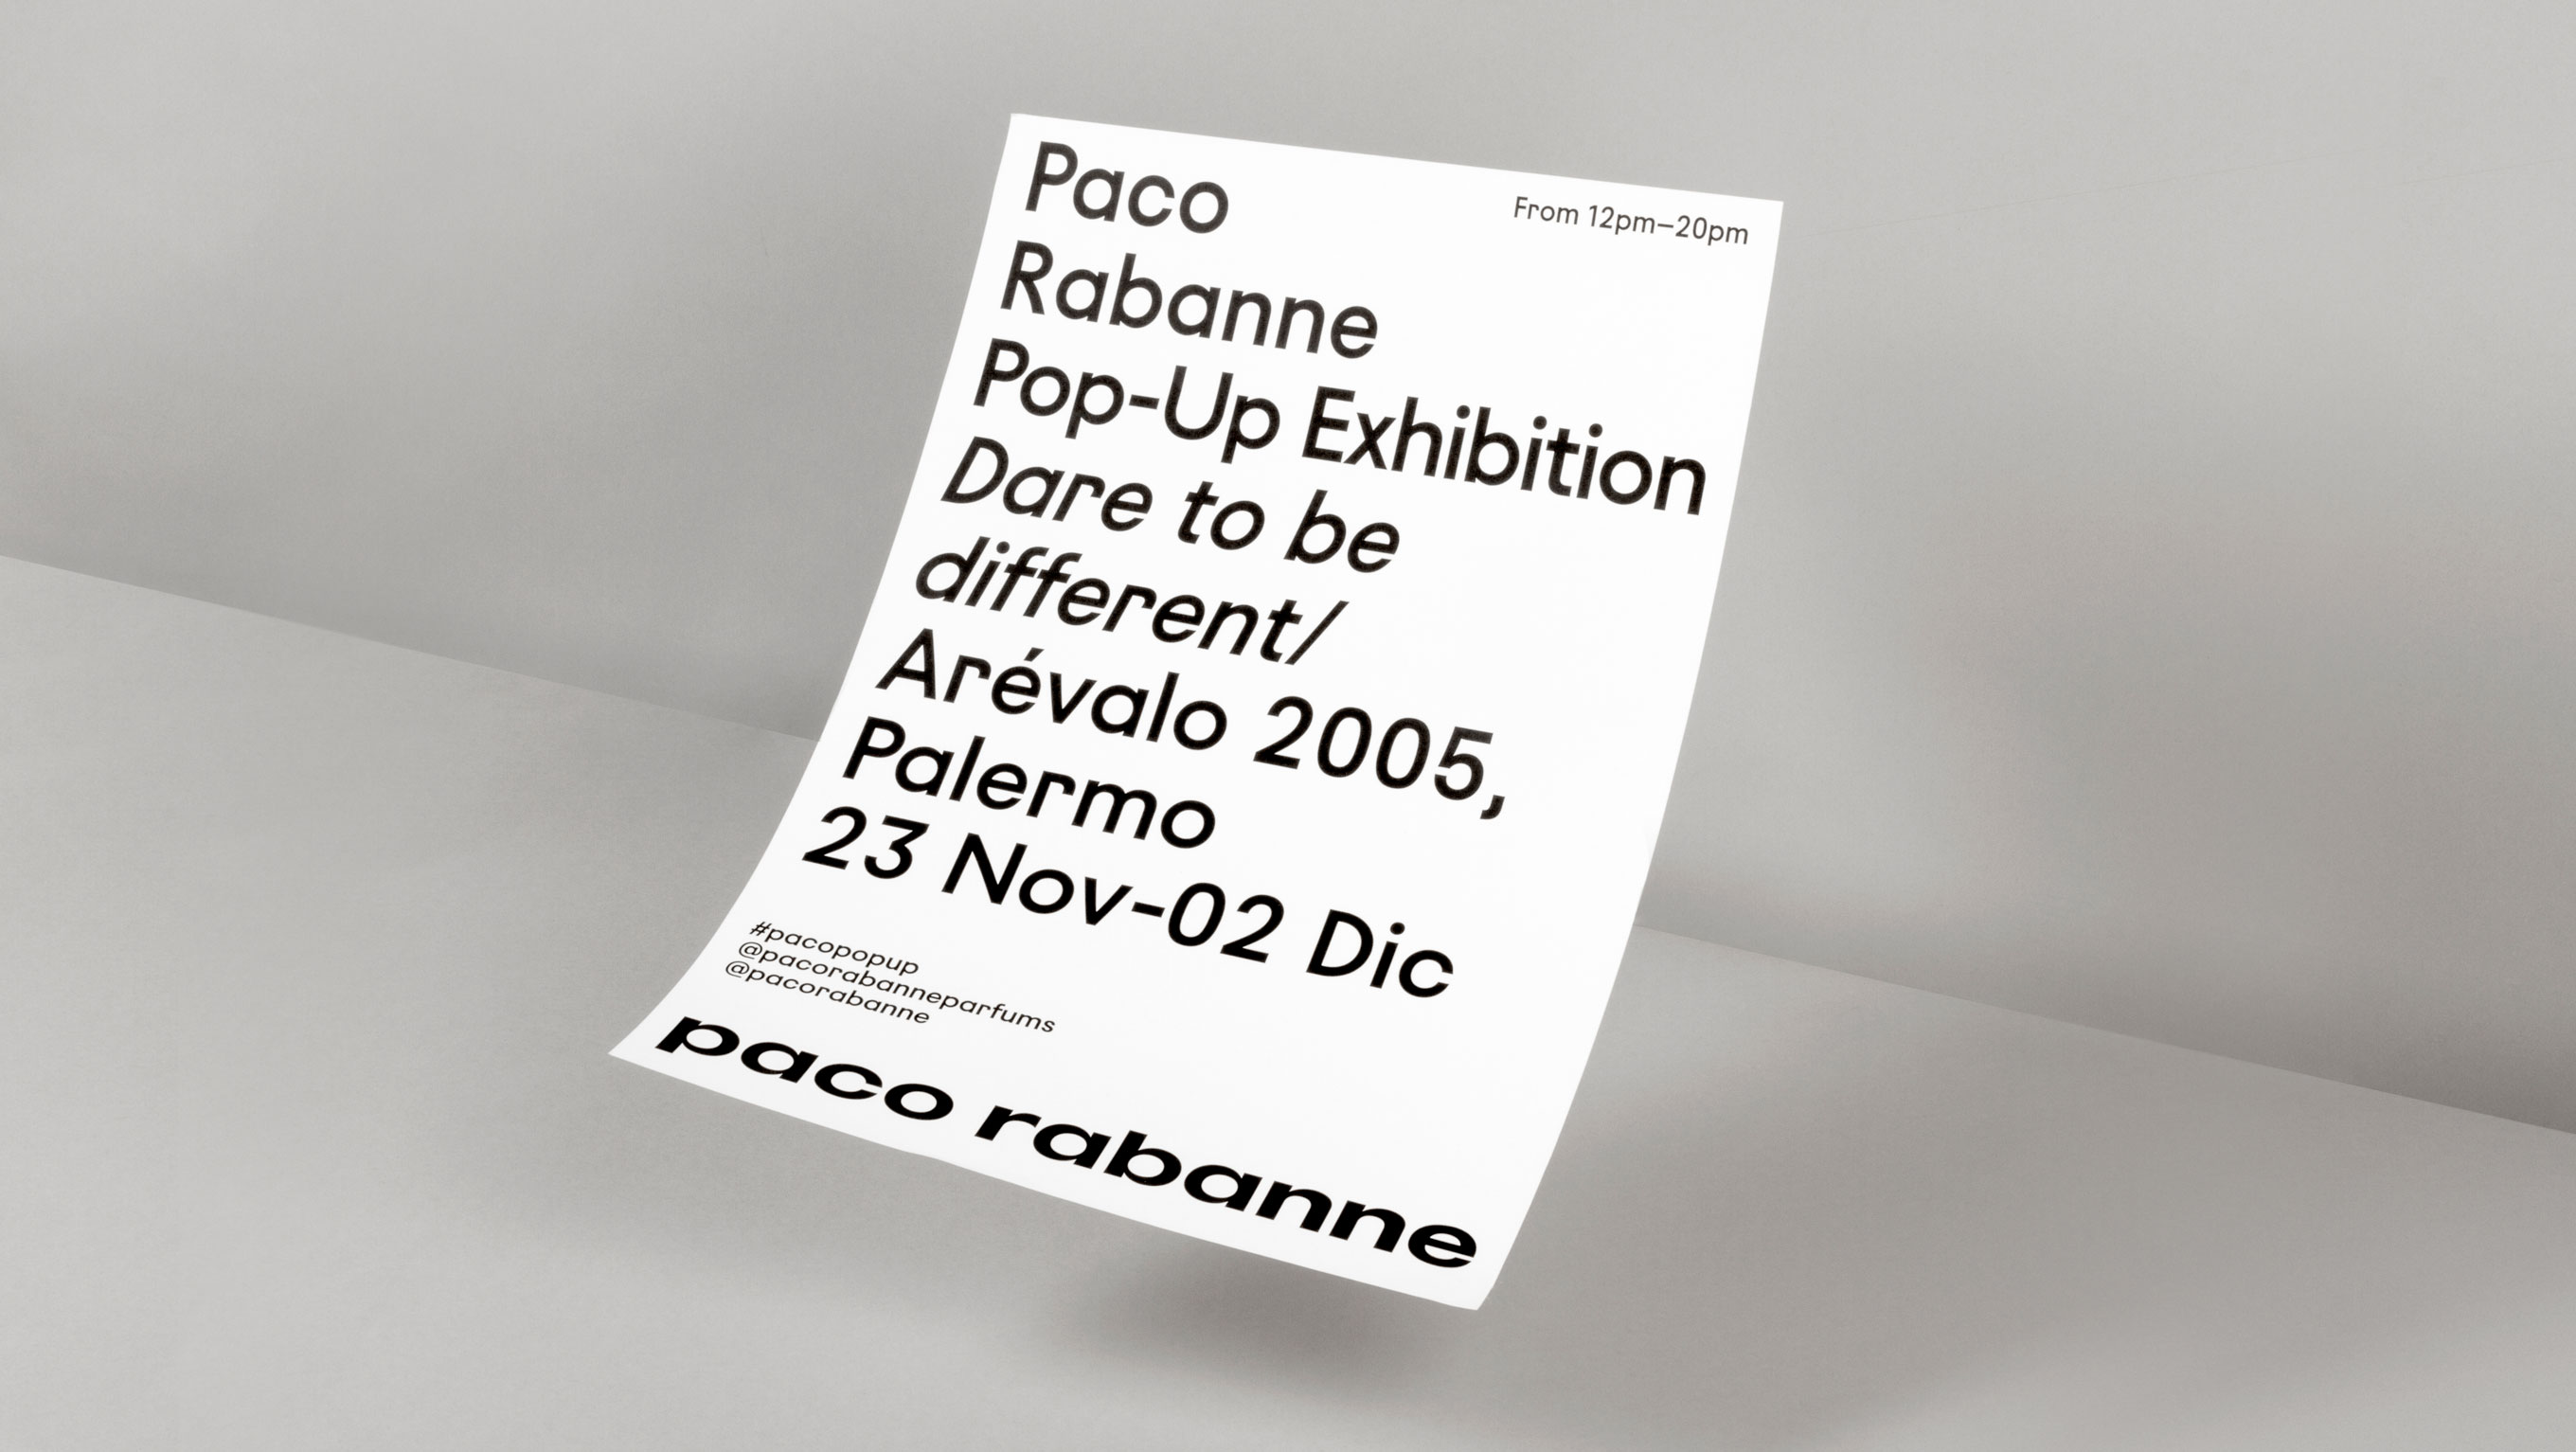 Paco Rabanne art direction design